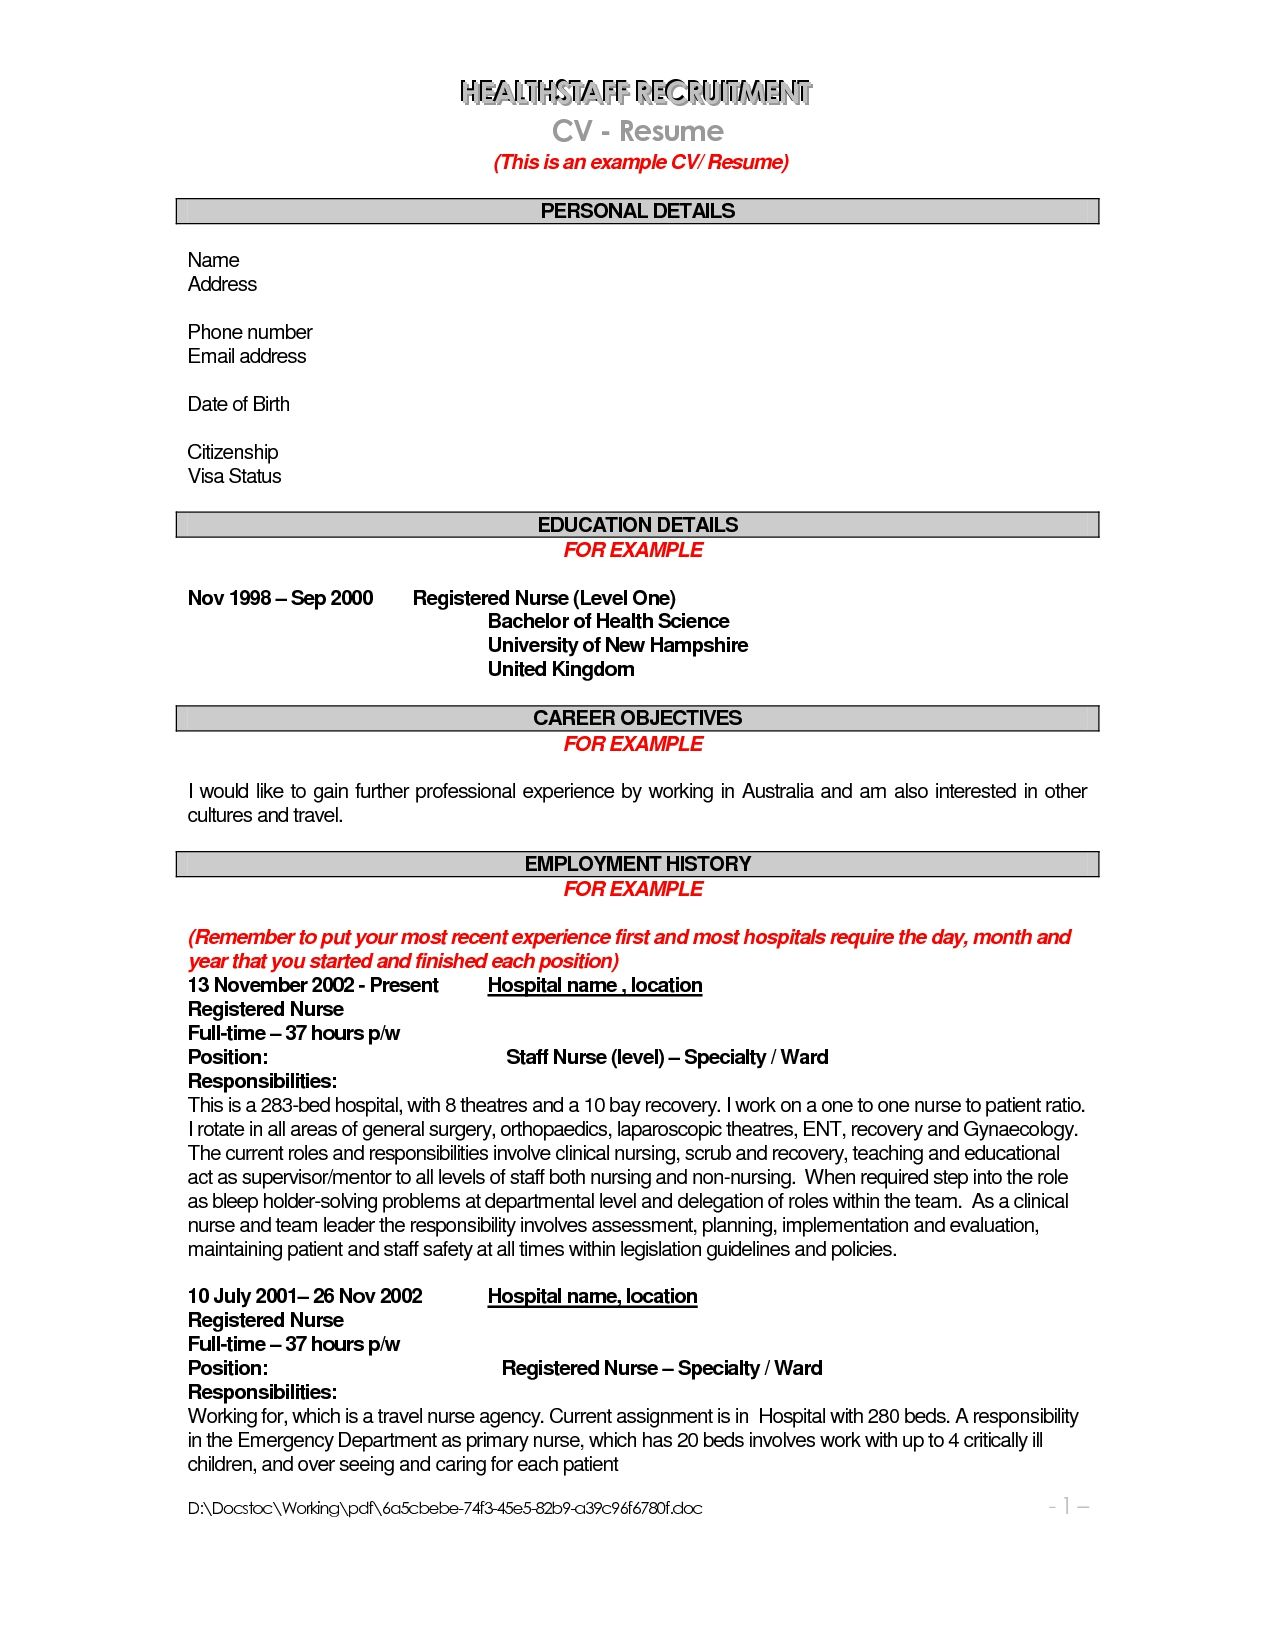 Samples Of Objectives For A Resume Stunning Resume Job Description Cover Letter Template Sample Resumes .